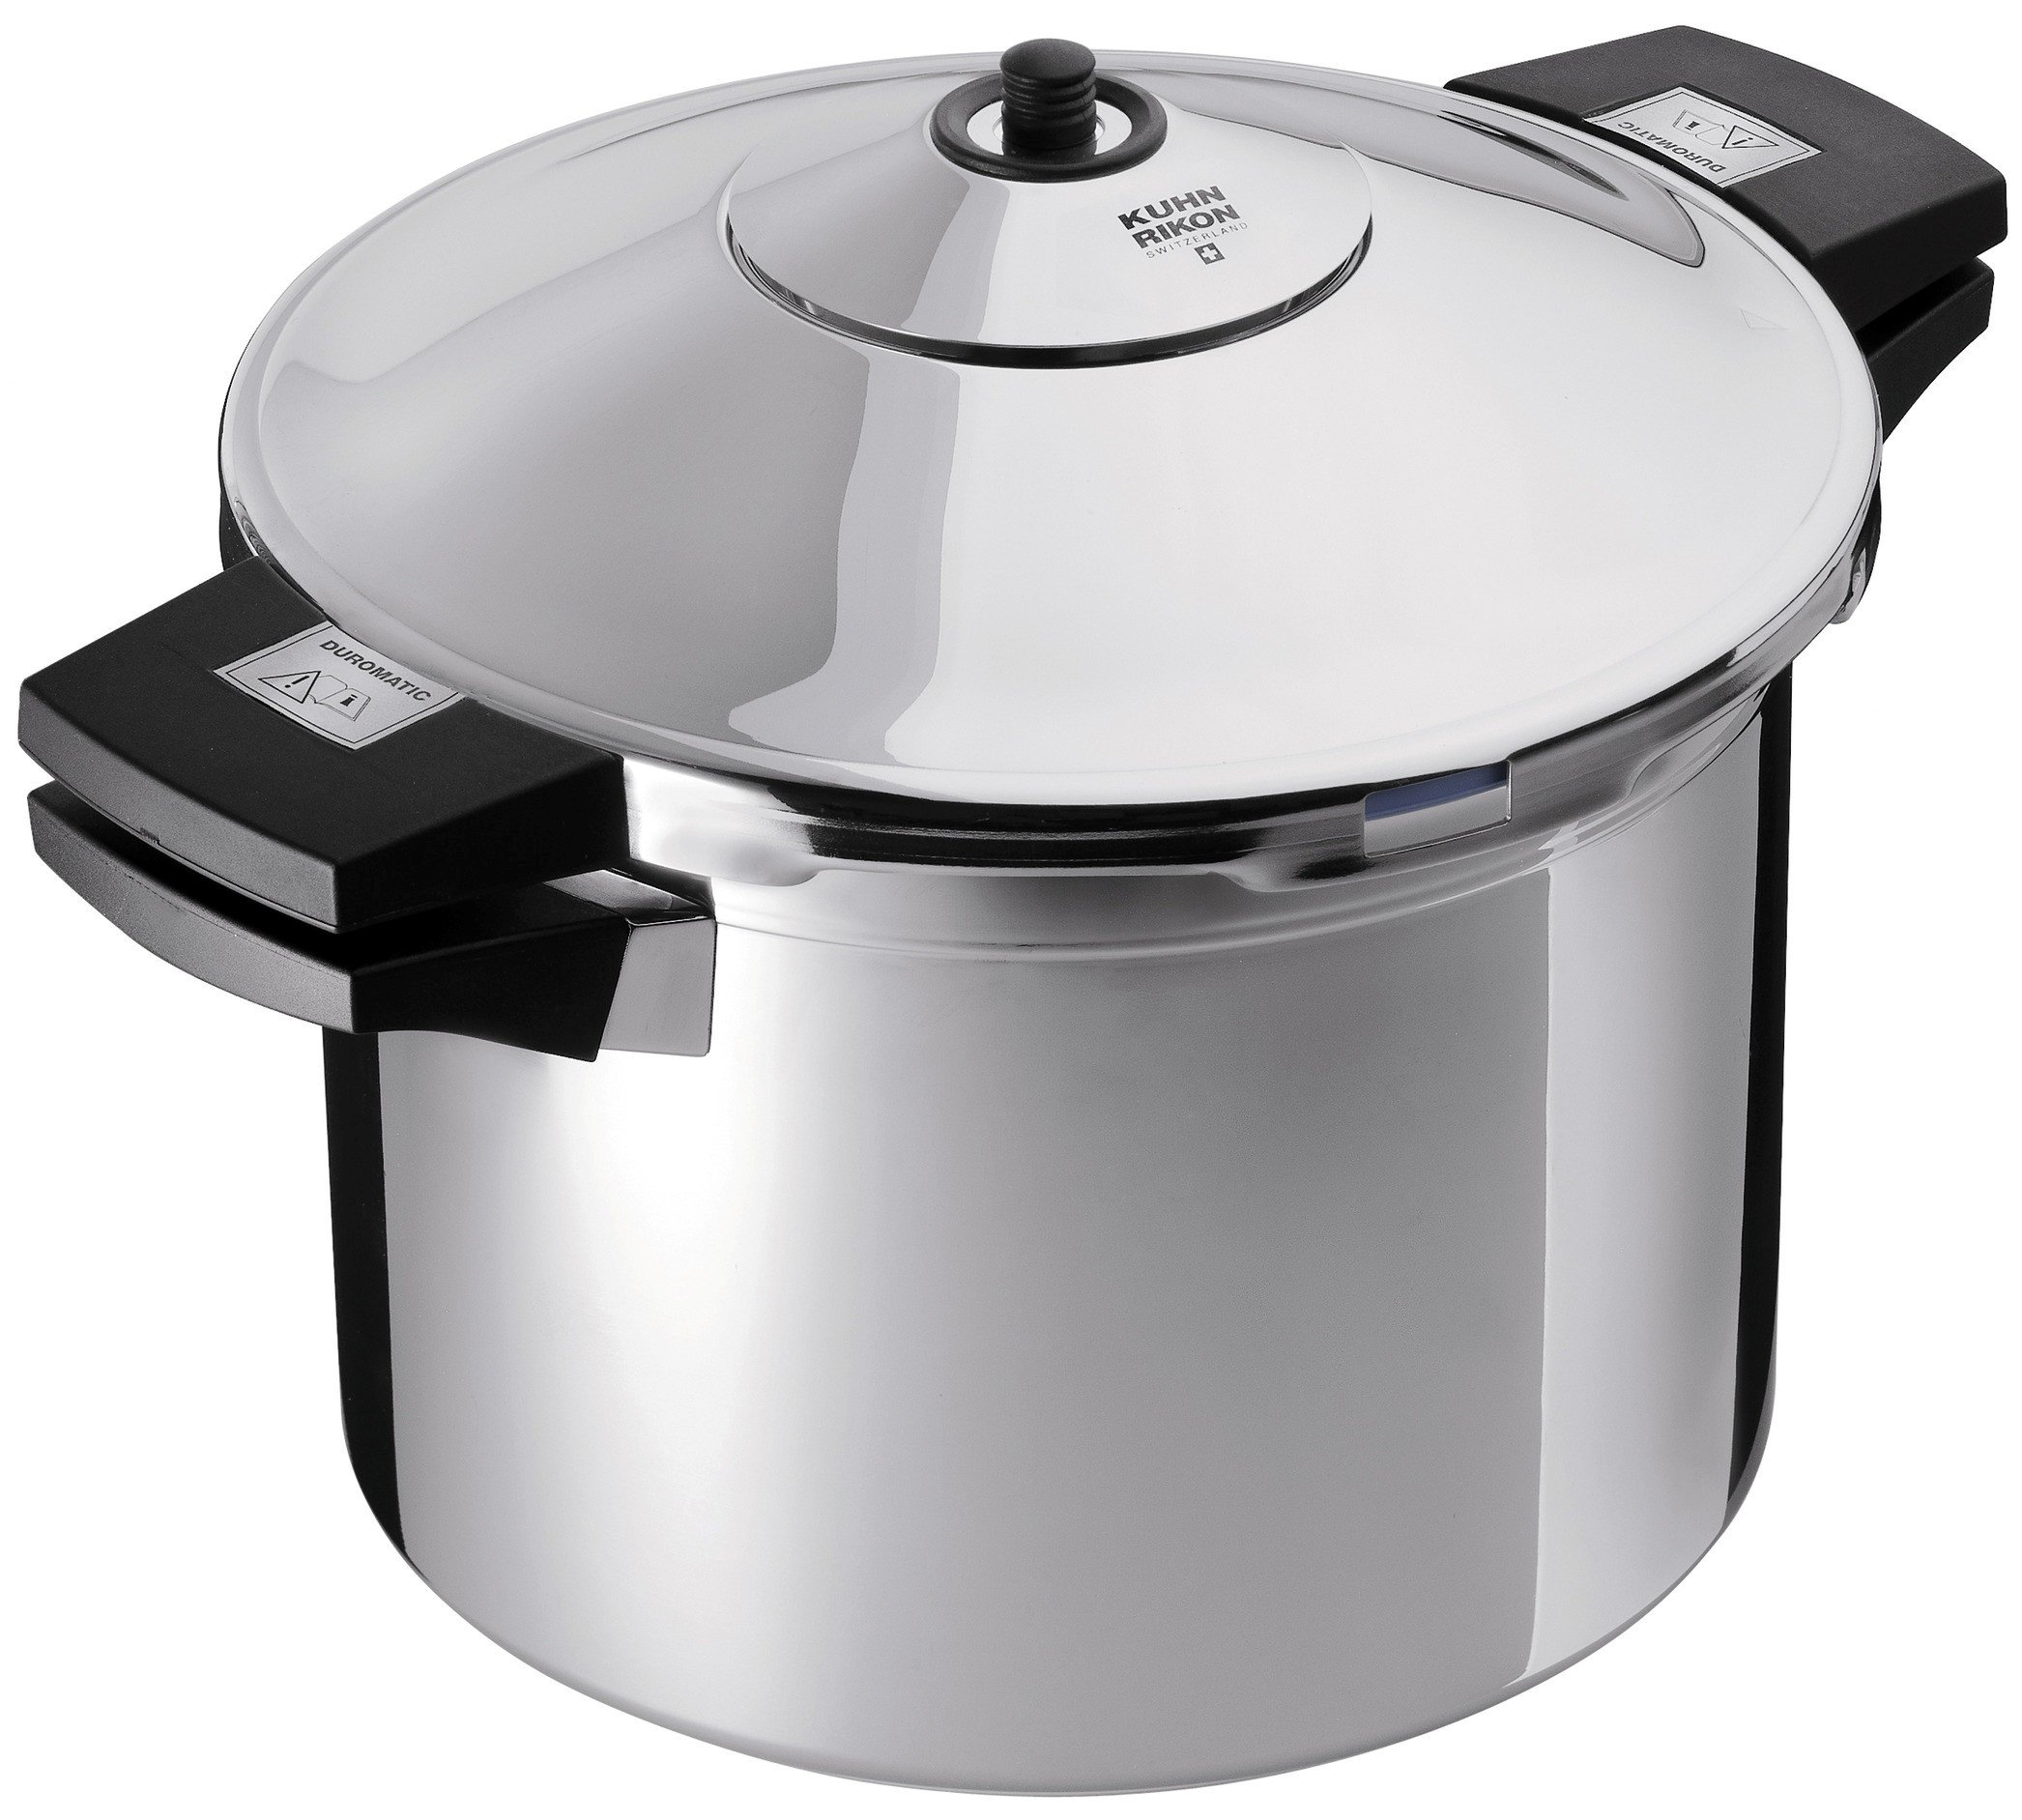 Kuhn Rikon Duromatic Stainless-Steel Stockpot Pressure Cooker - 6.3-Qt by Kuhn Rikon (Image #1)